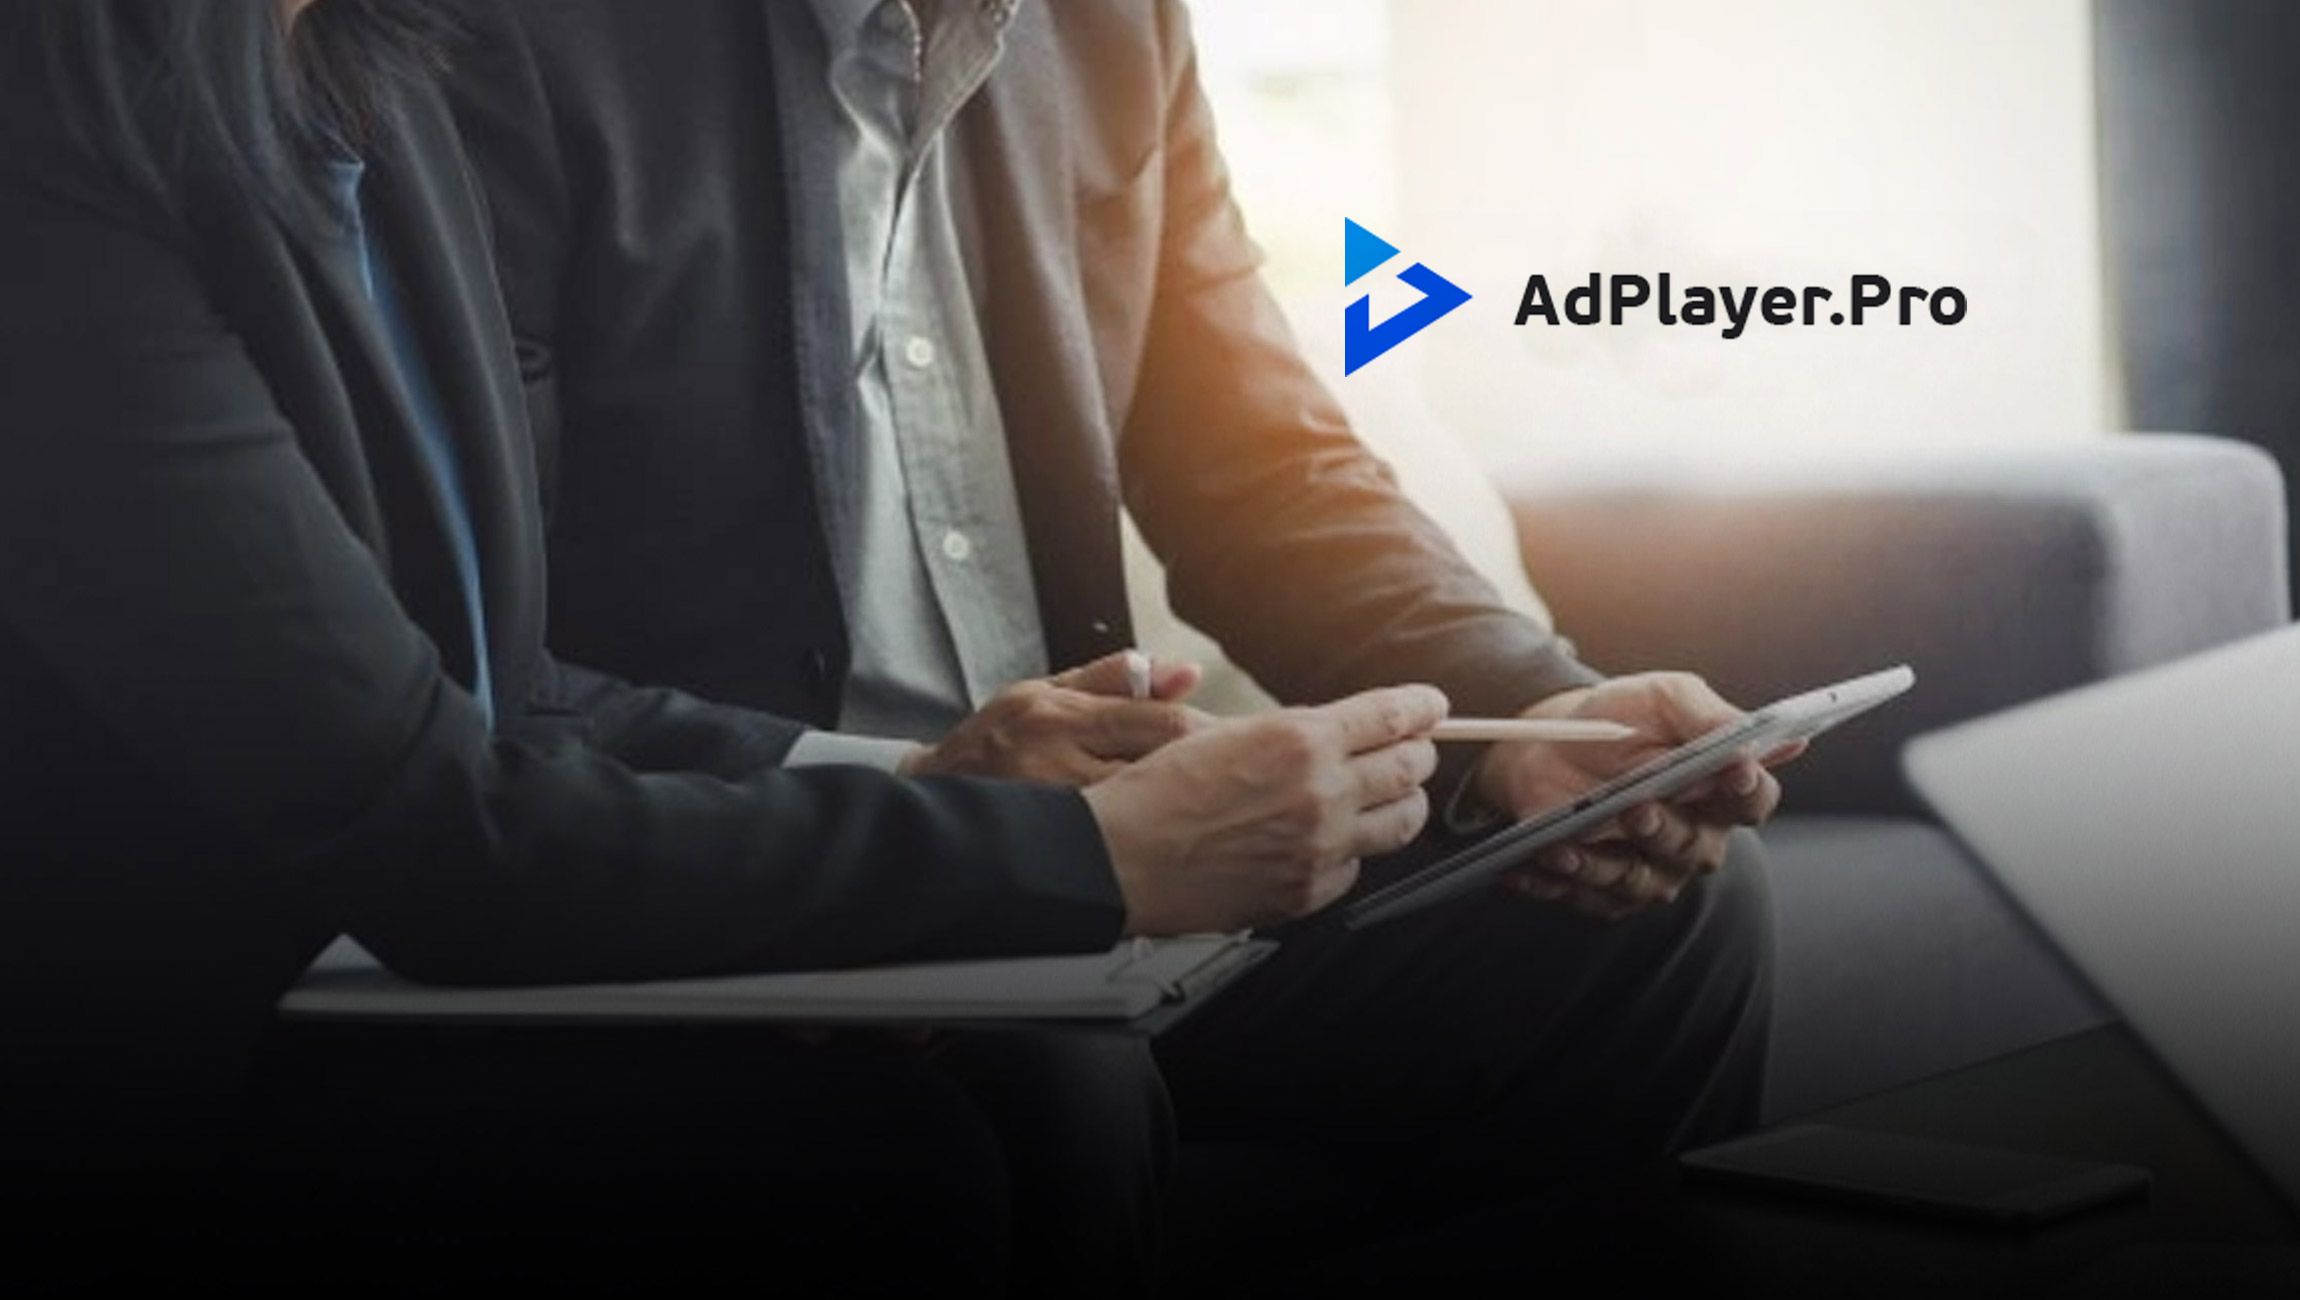 AdPlayer.Pro Video Ad Tech Provider Introduces New YouTube Demand Features